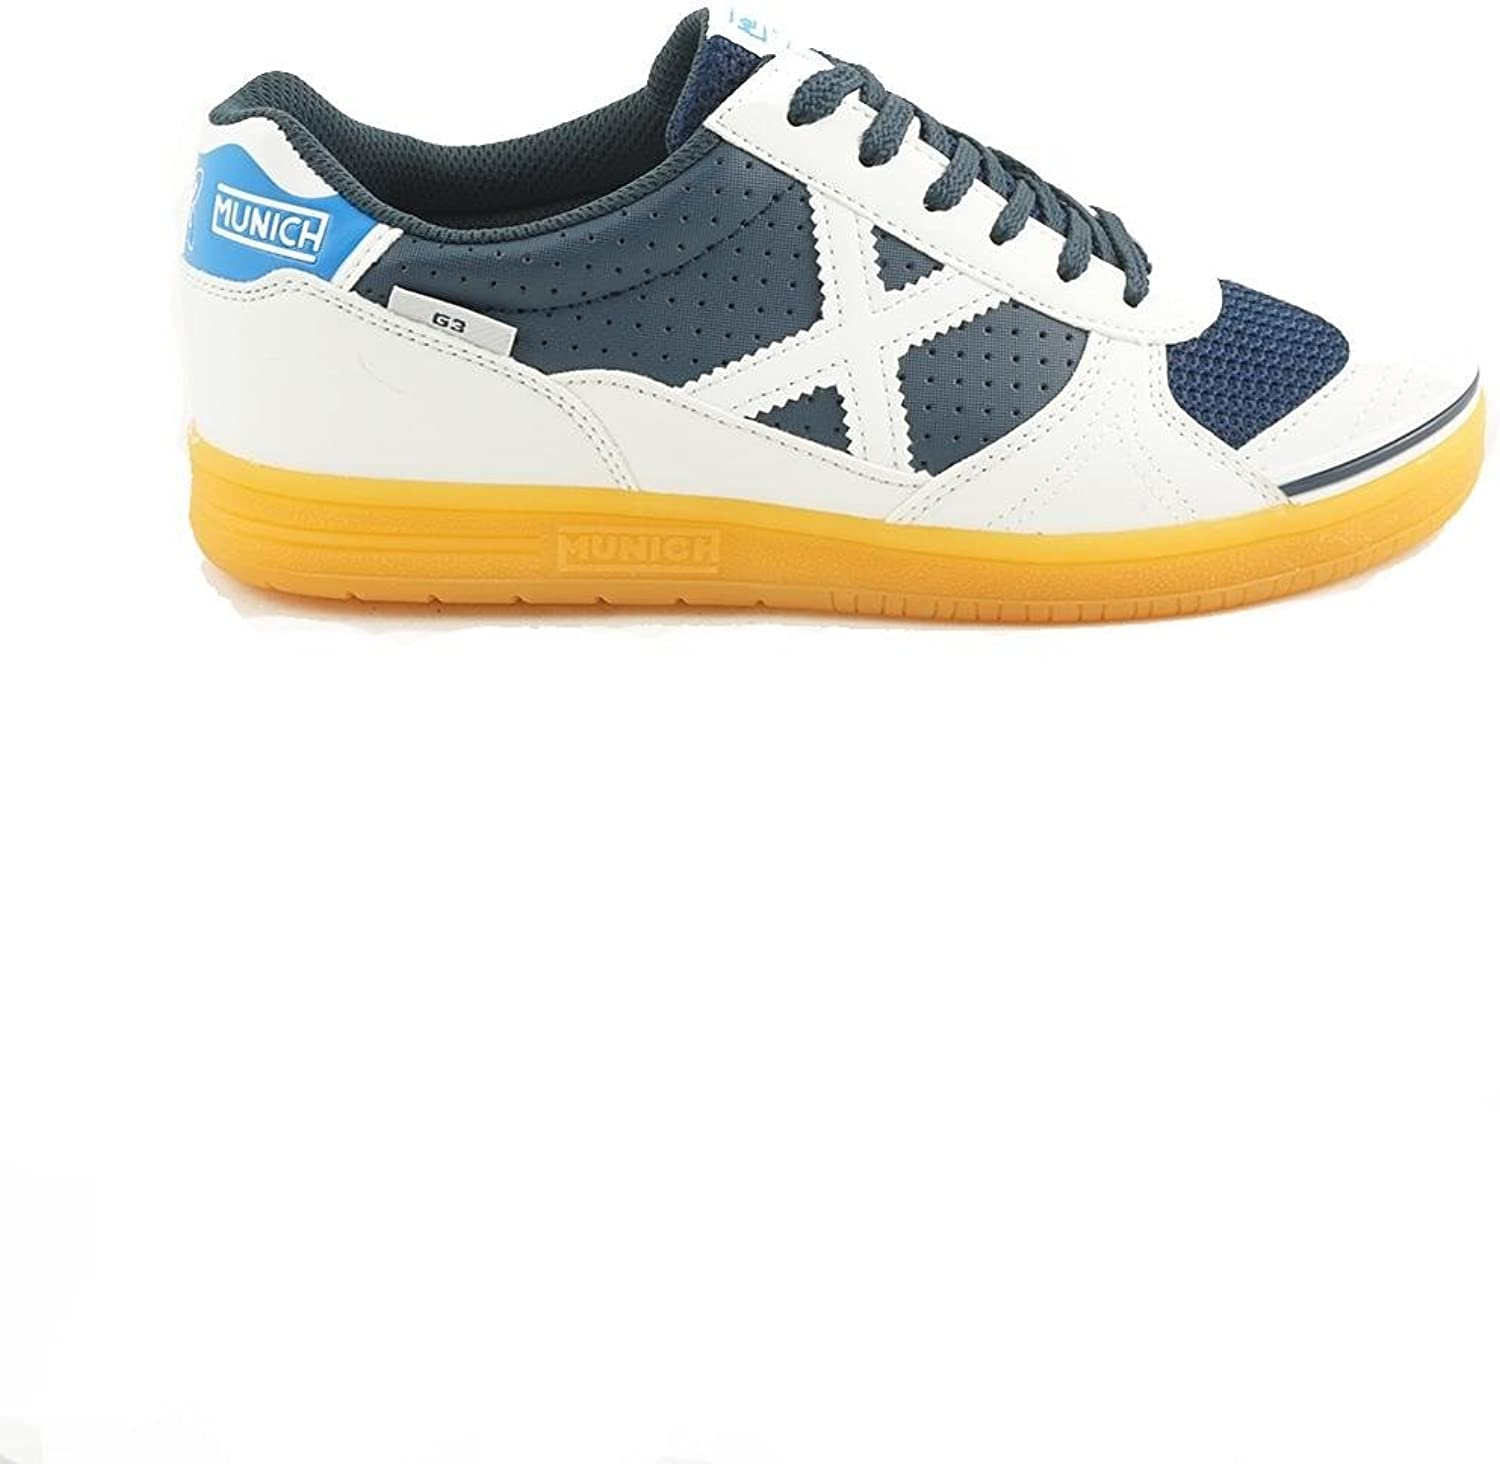 Munich Men's Futsal shoes white